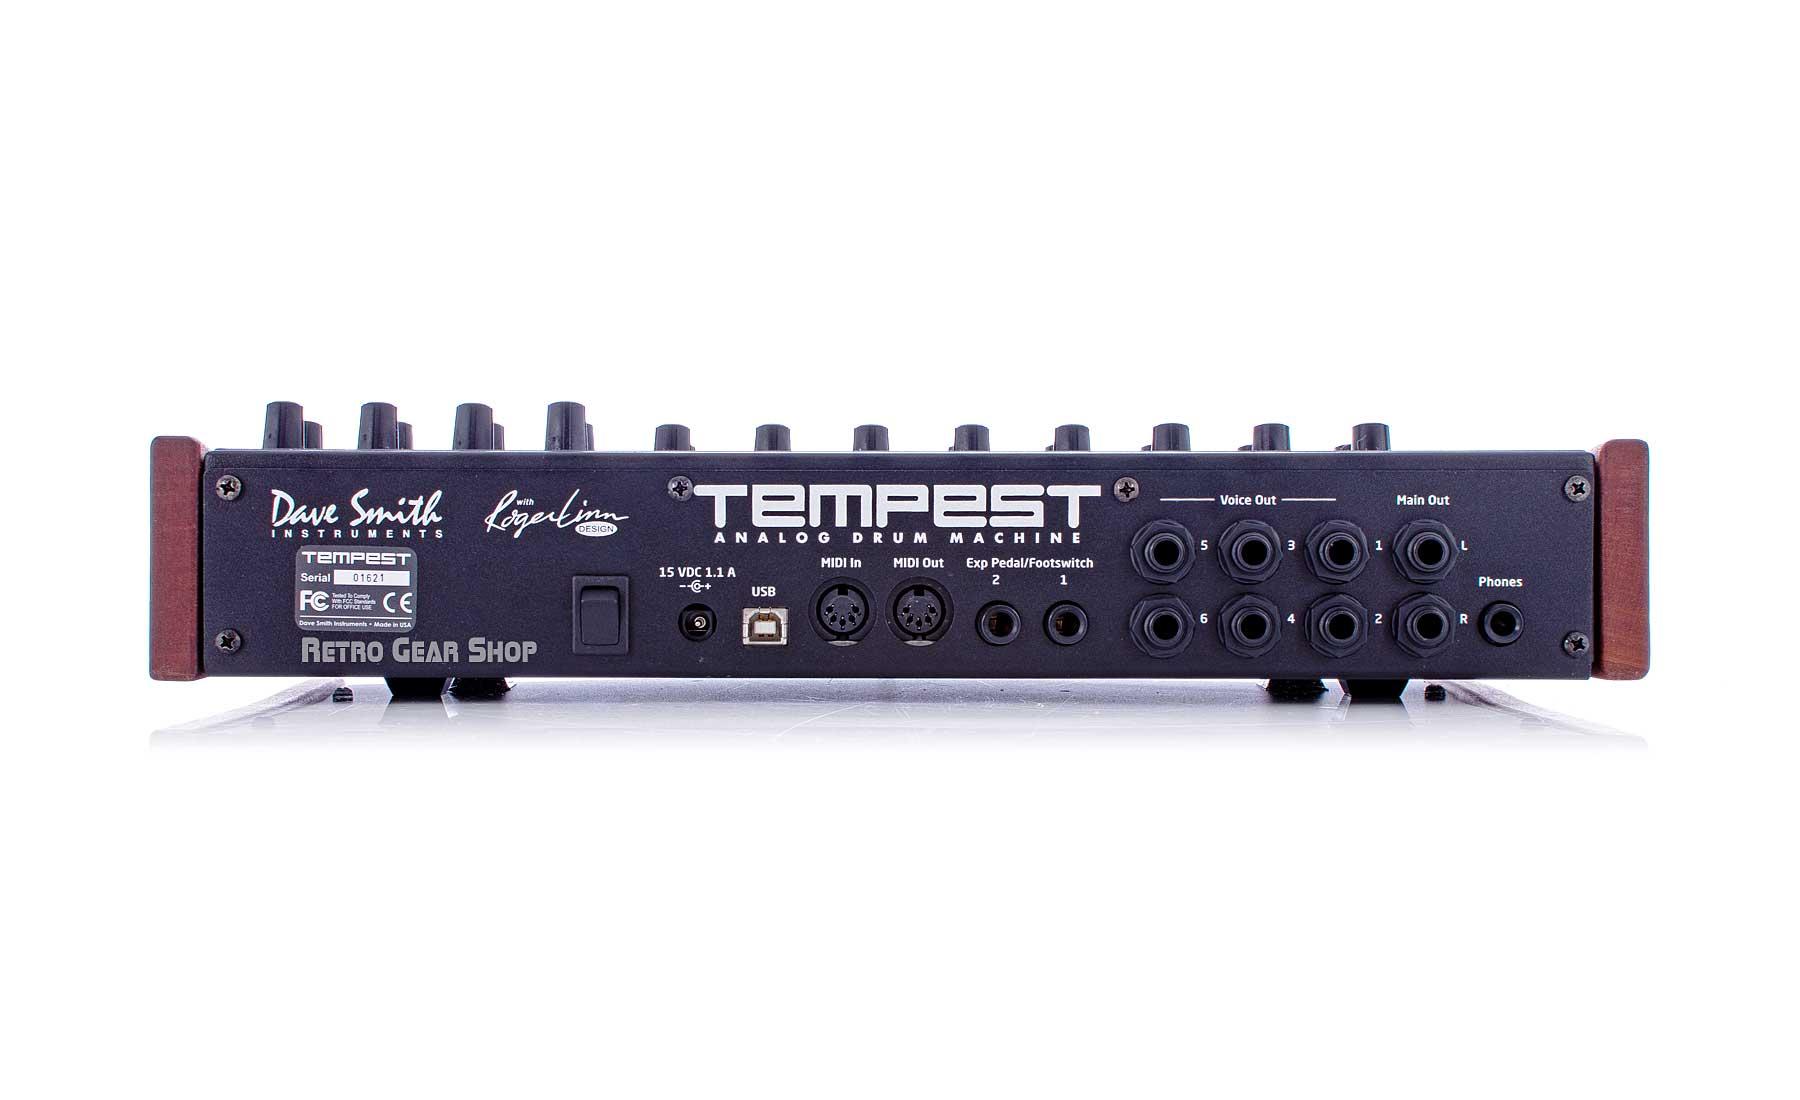 Dave Smith Instruments Tempest Rear